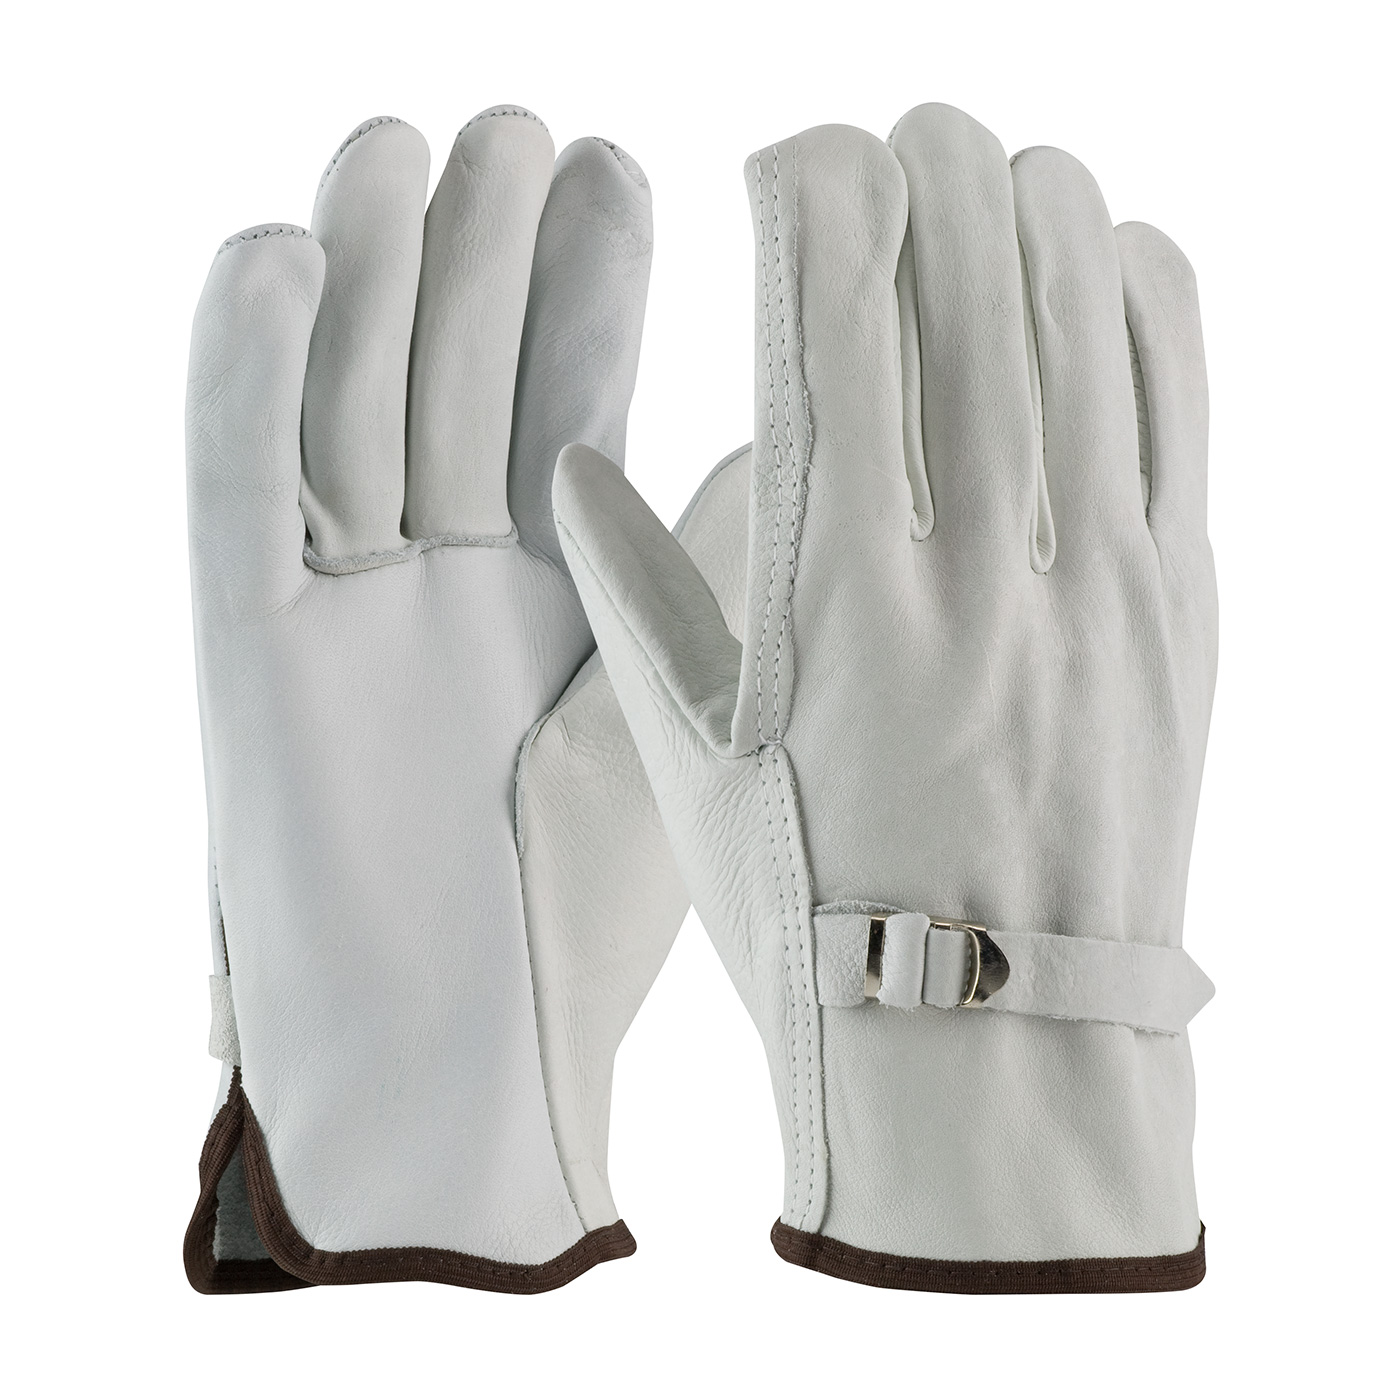 Superior Grade Top Grain Cowhide Leather Drivers Glove with Pull Strap Closure - Straight Thumb, Natural, L